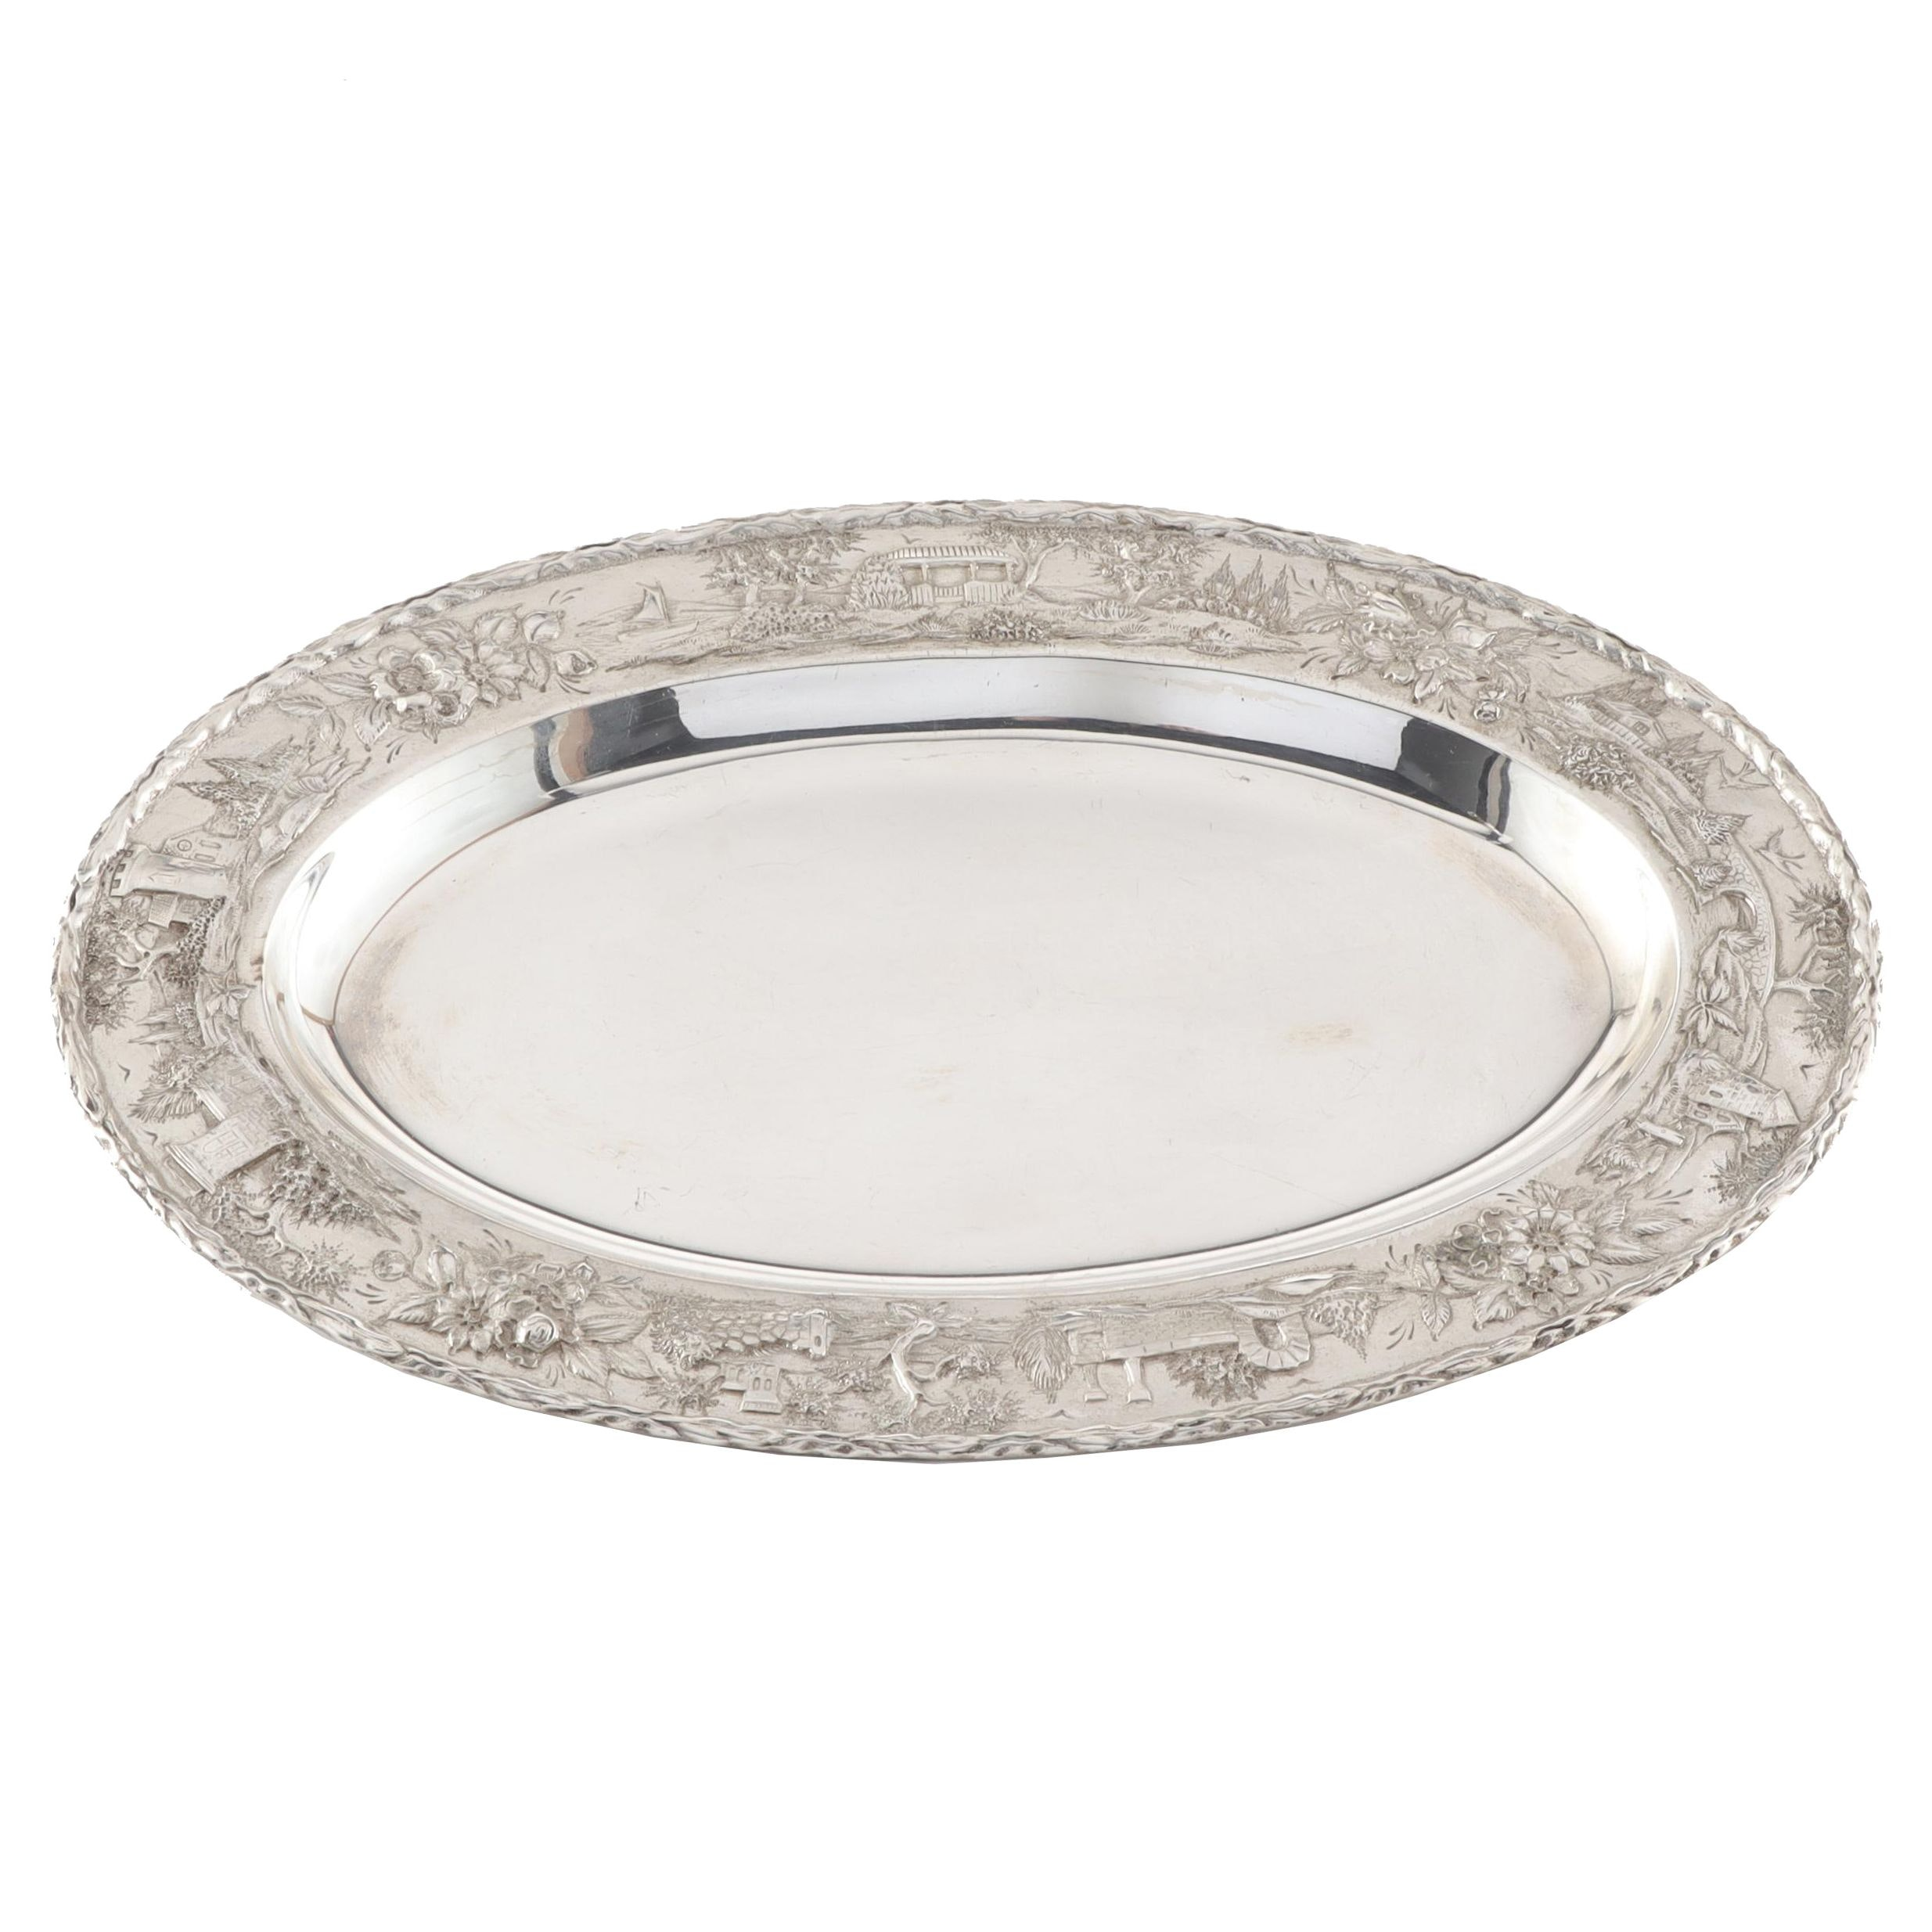 """S. Kirk & Son Sterling Silver """"Castle"""" Repoussé Oval Tray"""